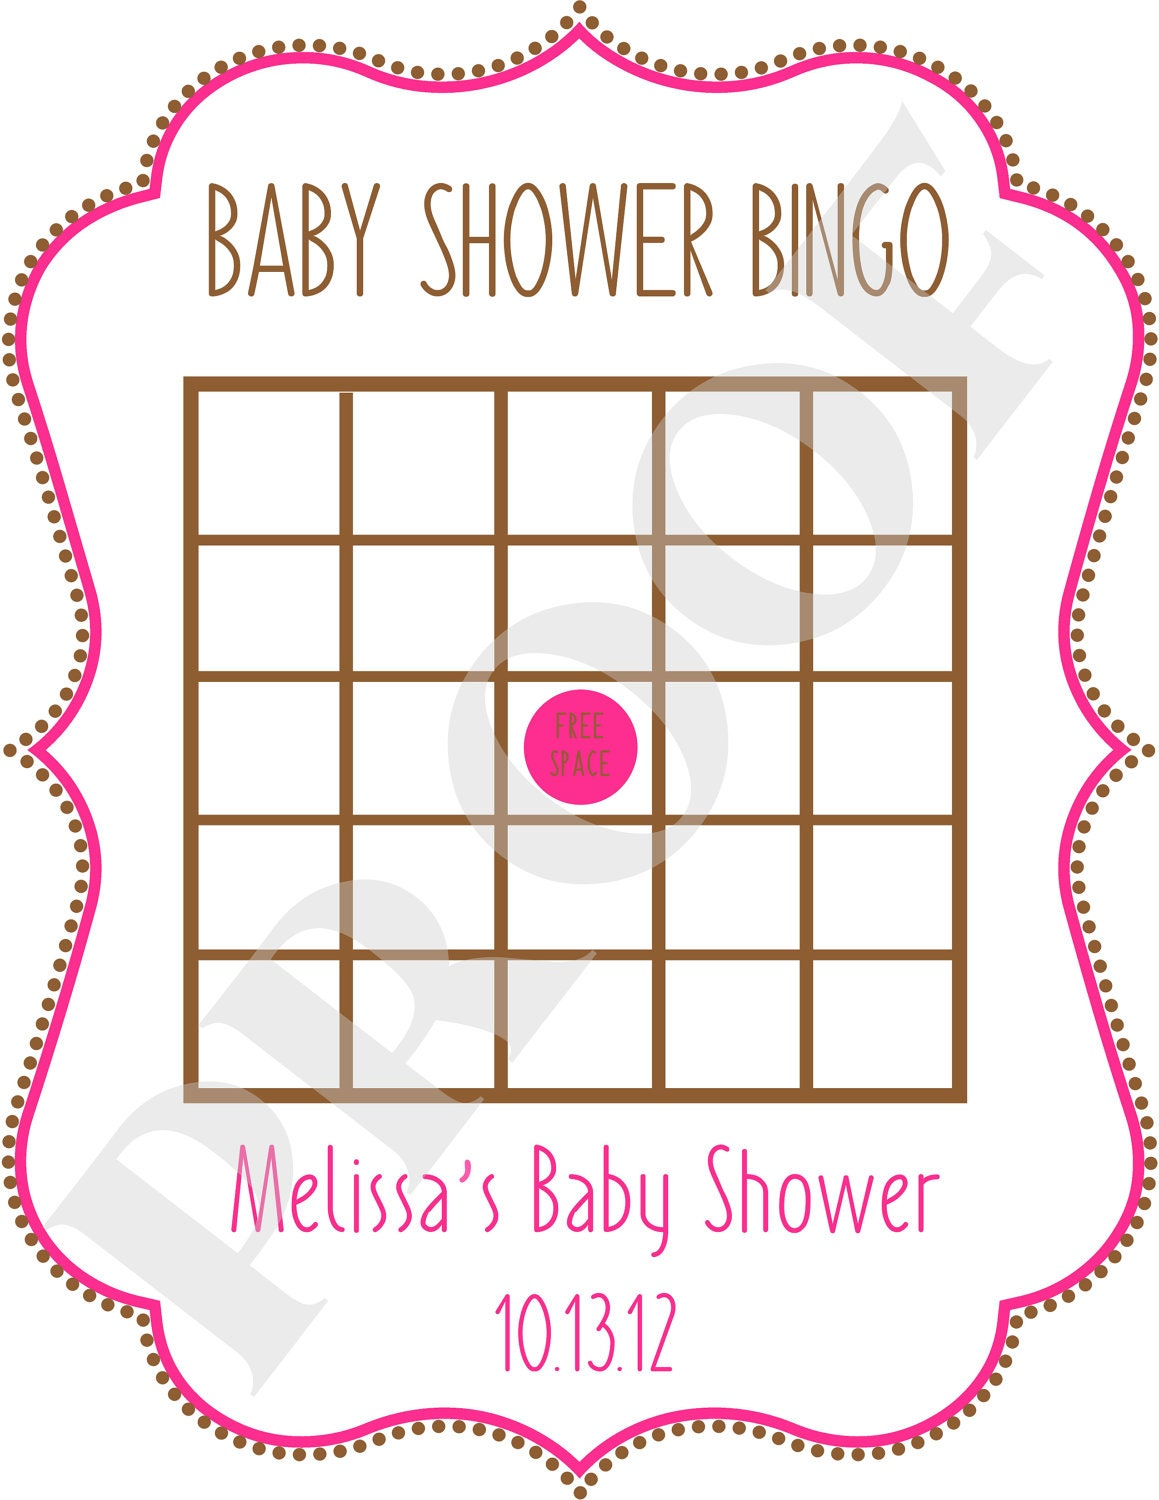 baby shower bingo jpeg file by poshpapetiere on etsy